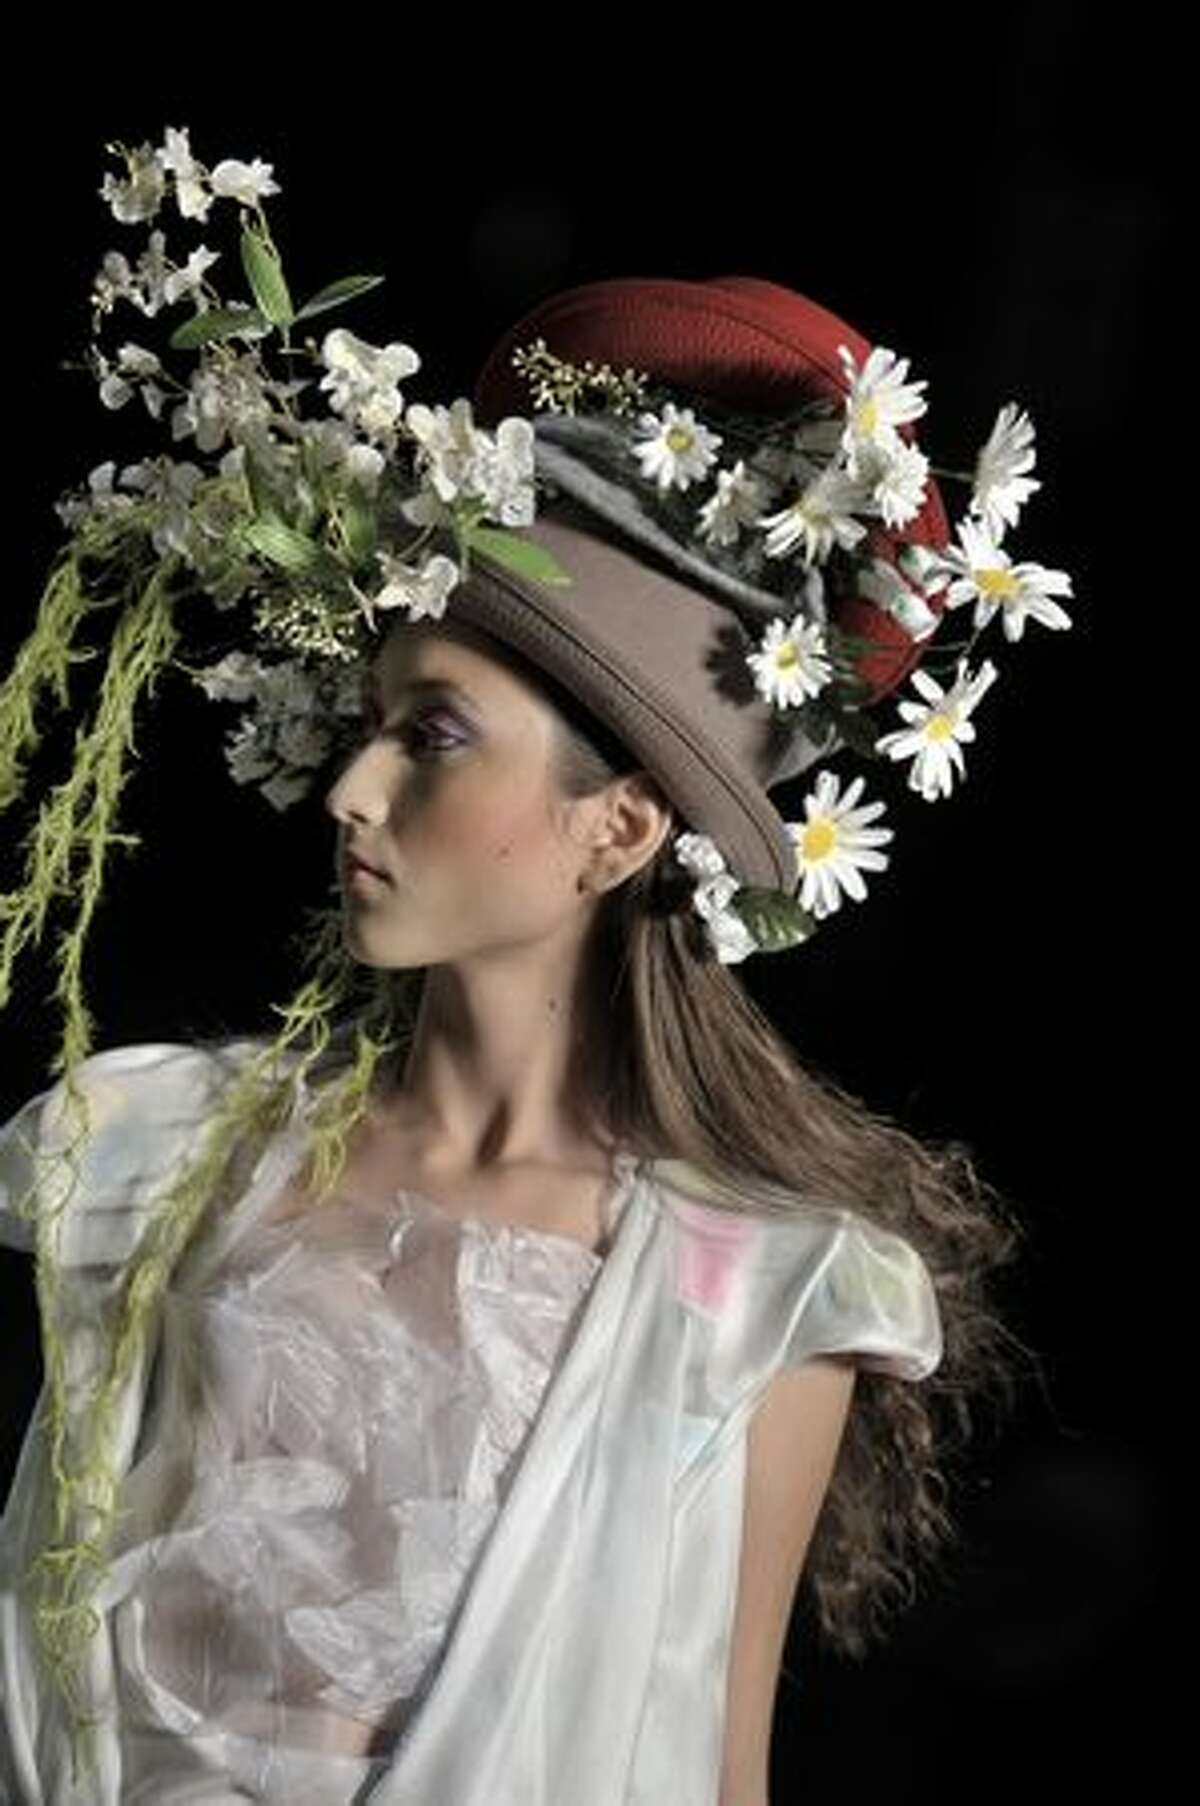 A model presents a creation by Brazilian designer Erika Ikezili during the opening day of the 2010-2011 Spring-Summer collections of the Sao Paulo Fashion Week in Sao Paulo, Brazil.